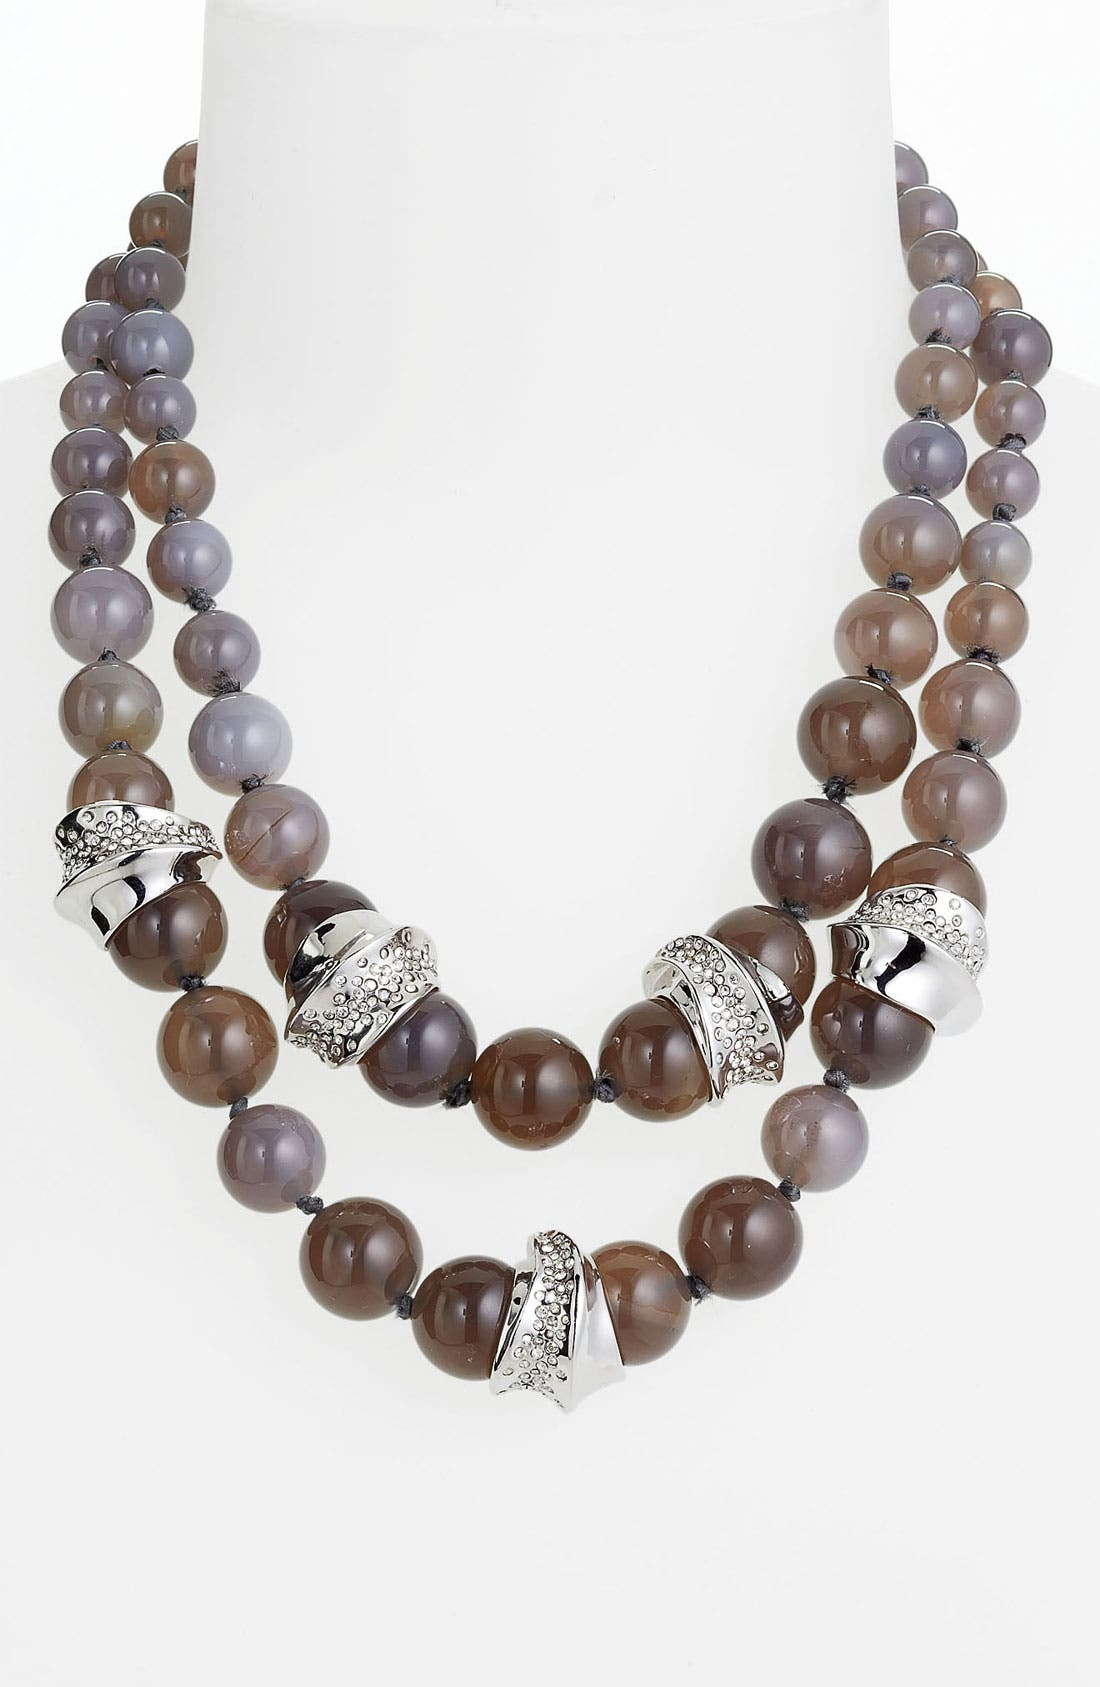 Alternate Image 1 Selected - Alexis Bittar 'Miss Havisham - Bel Air' Double Strand Necklace